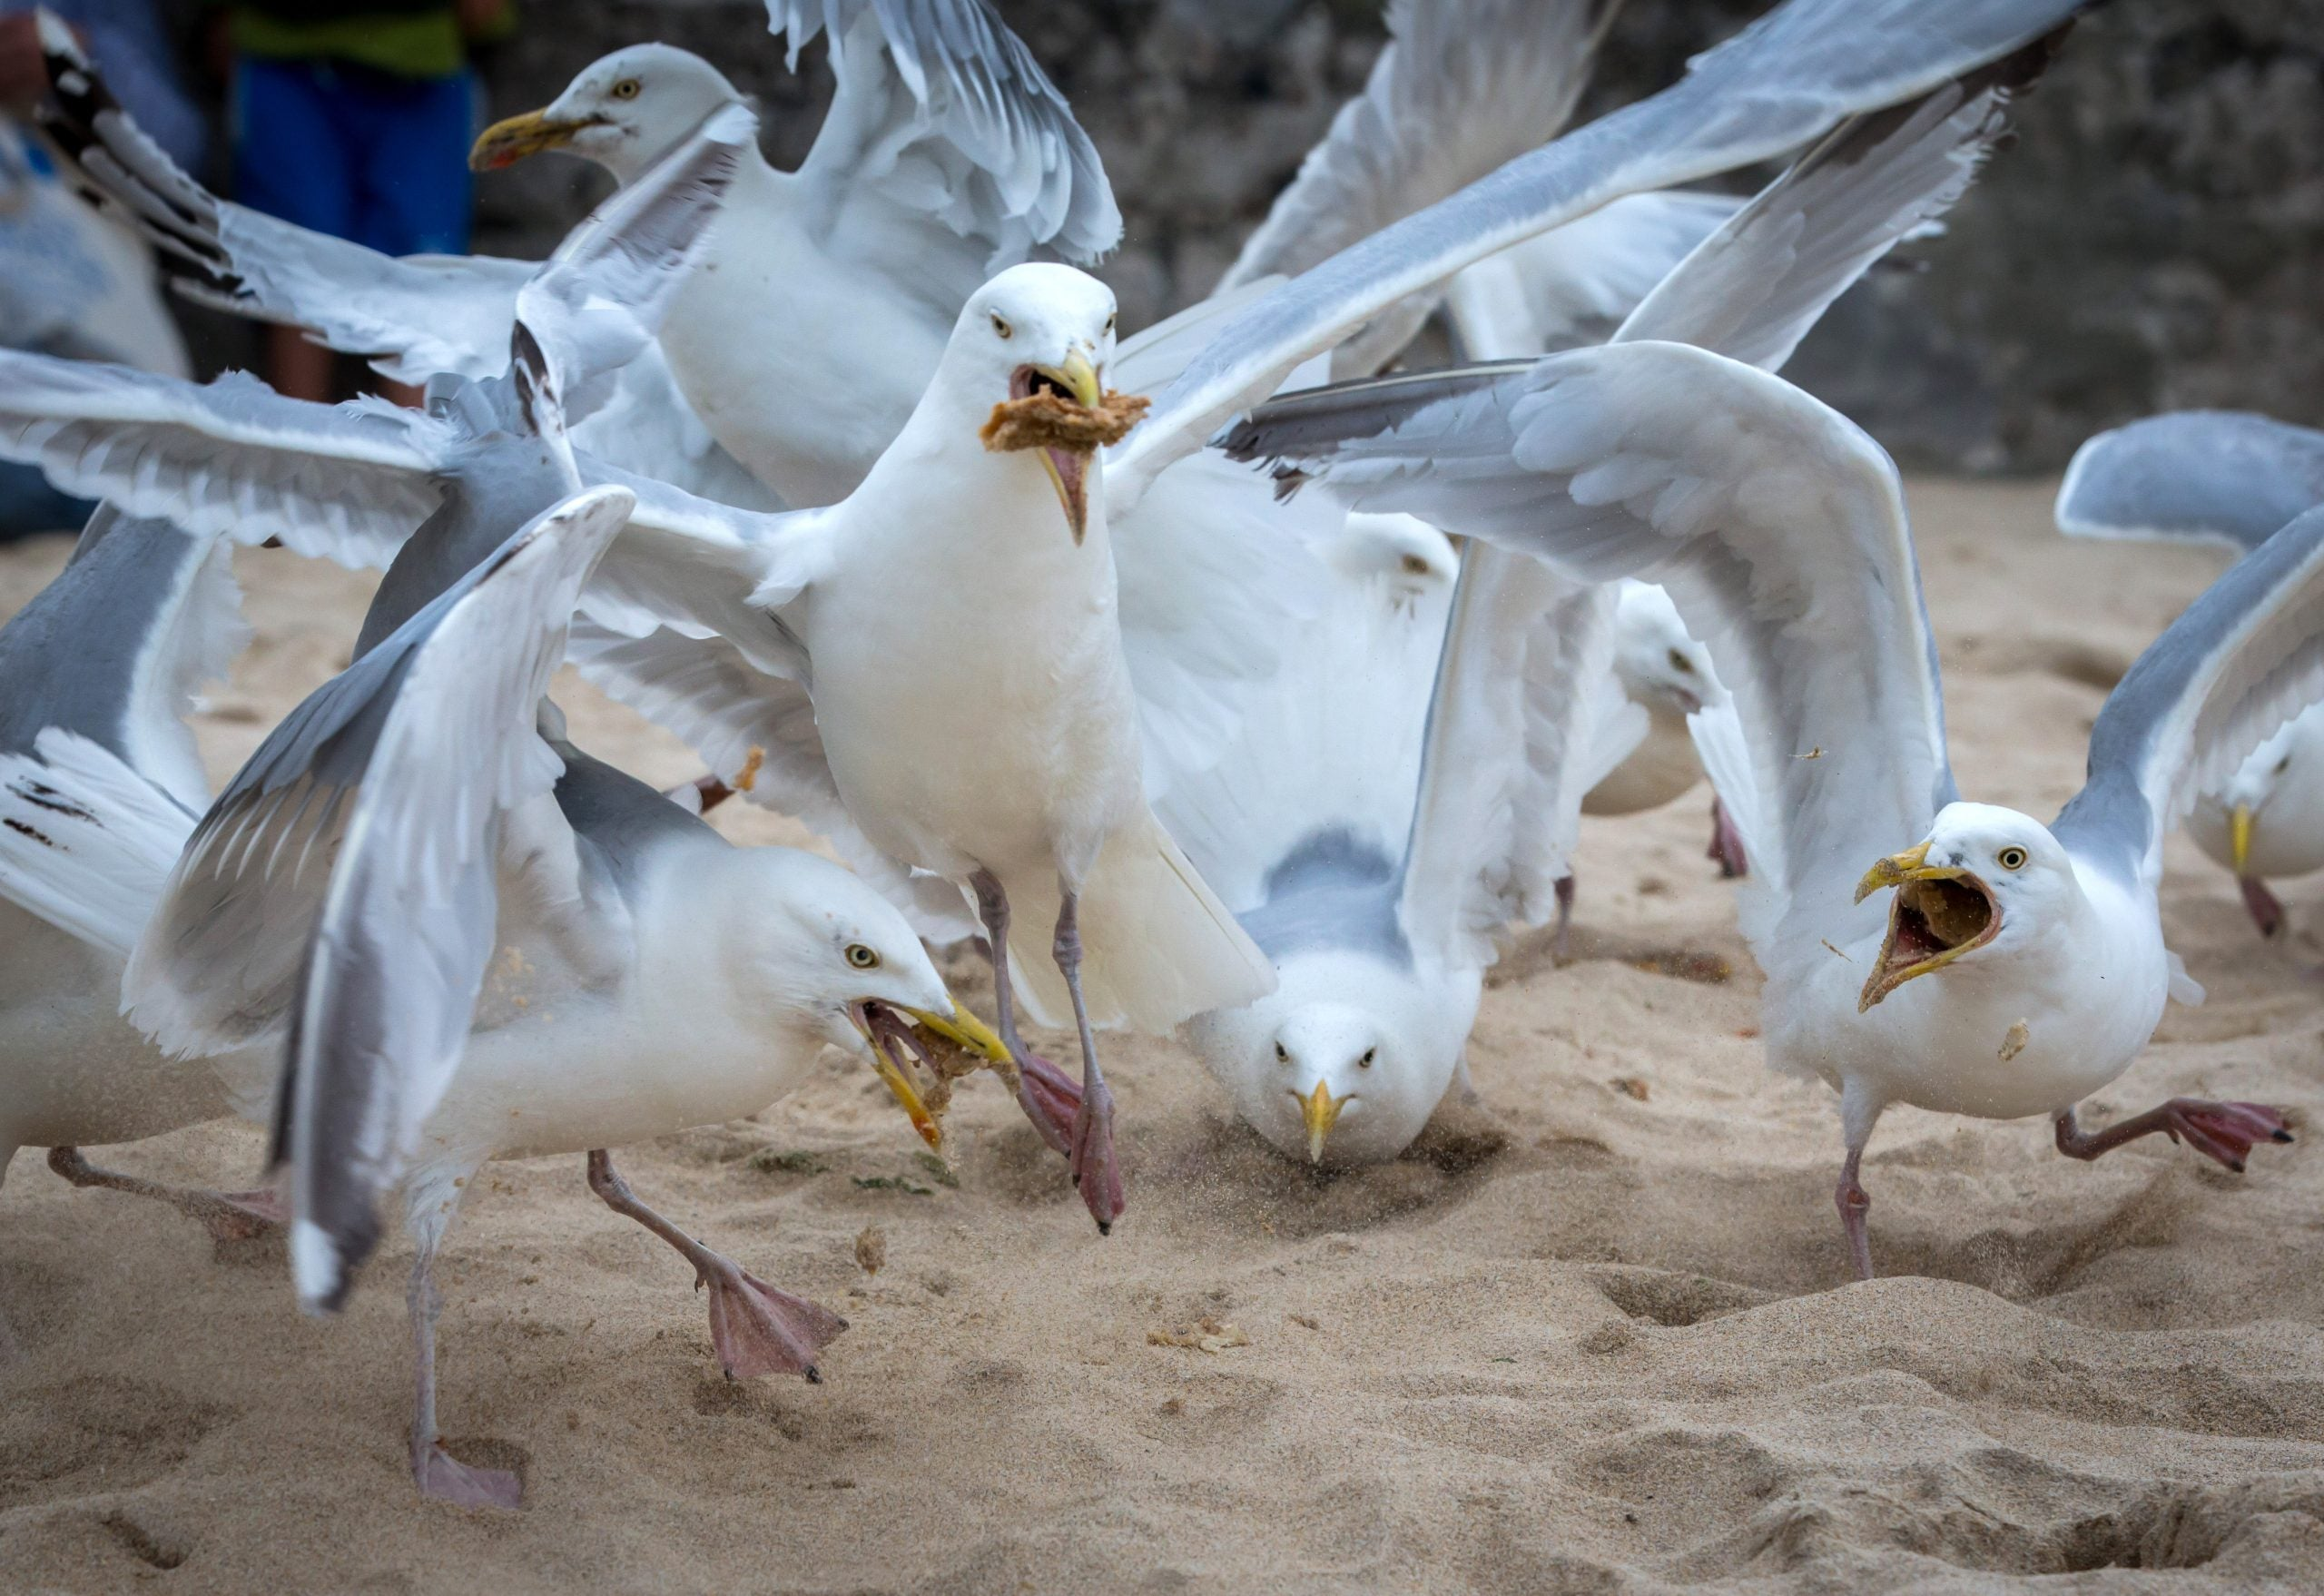 Our interaction with seagulls may be why they take our chips in the first place